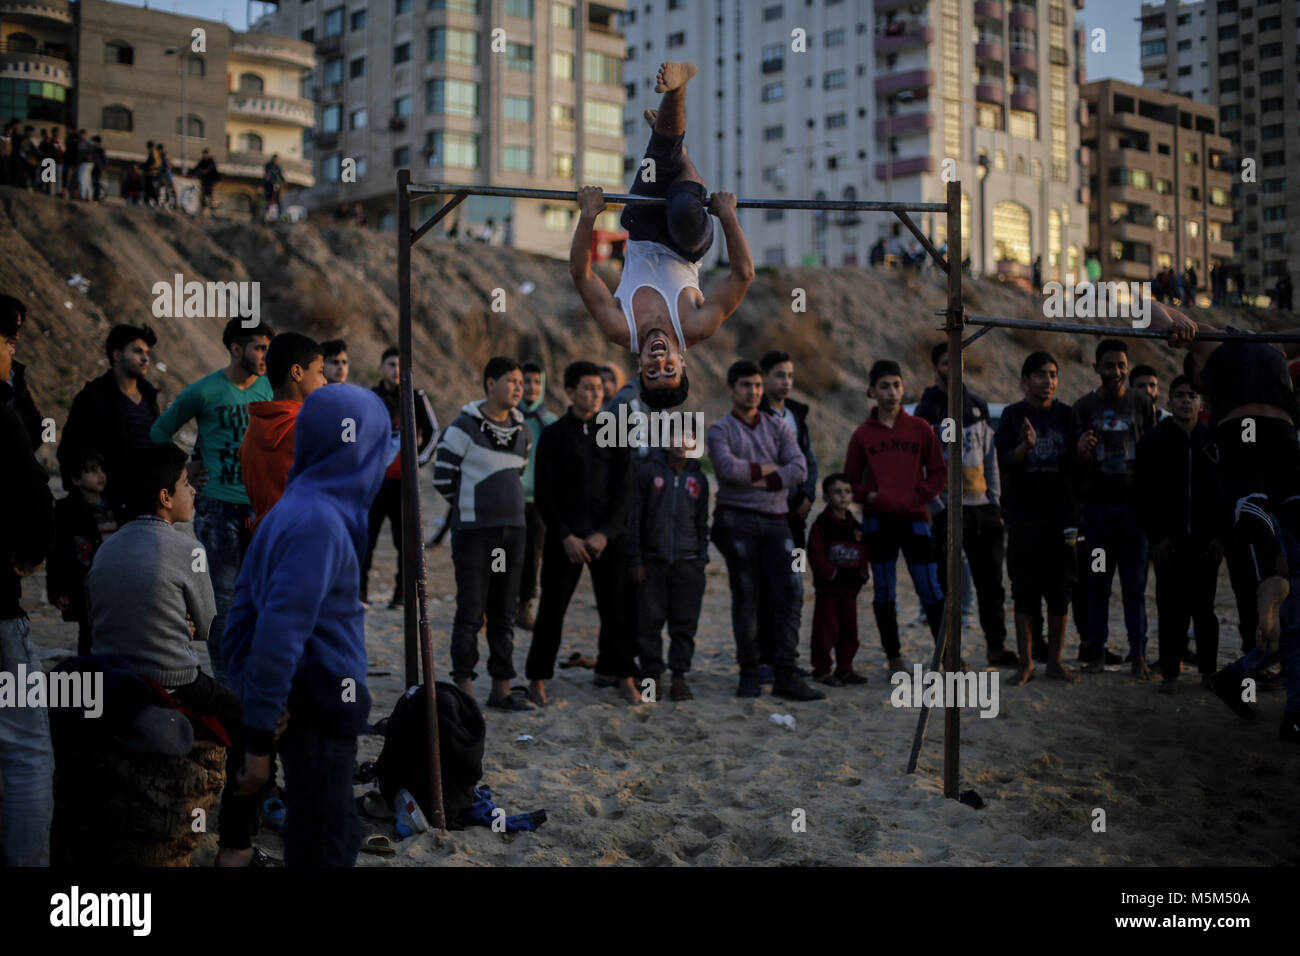 Gaza City, Gaza. 23rd Feb, 2018. Palestinians watch as a youth practices his parkour skills on the beach of Gaza - Stock Image